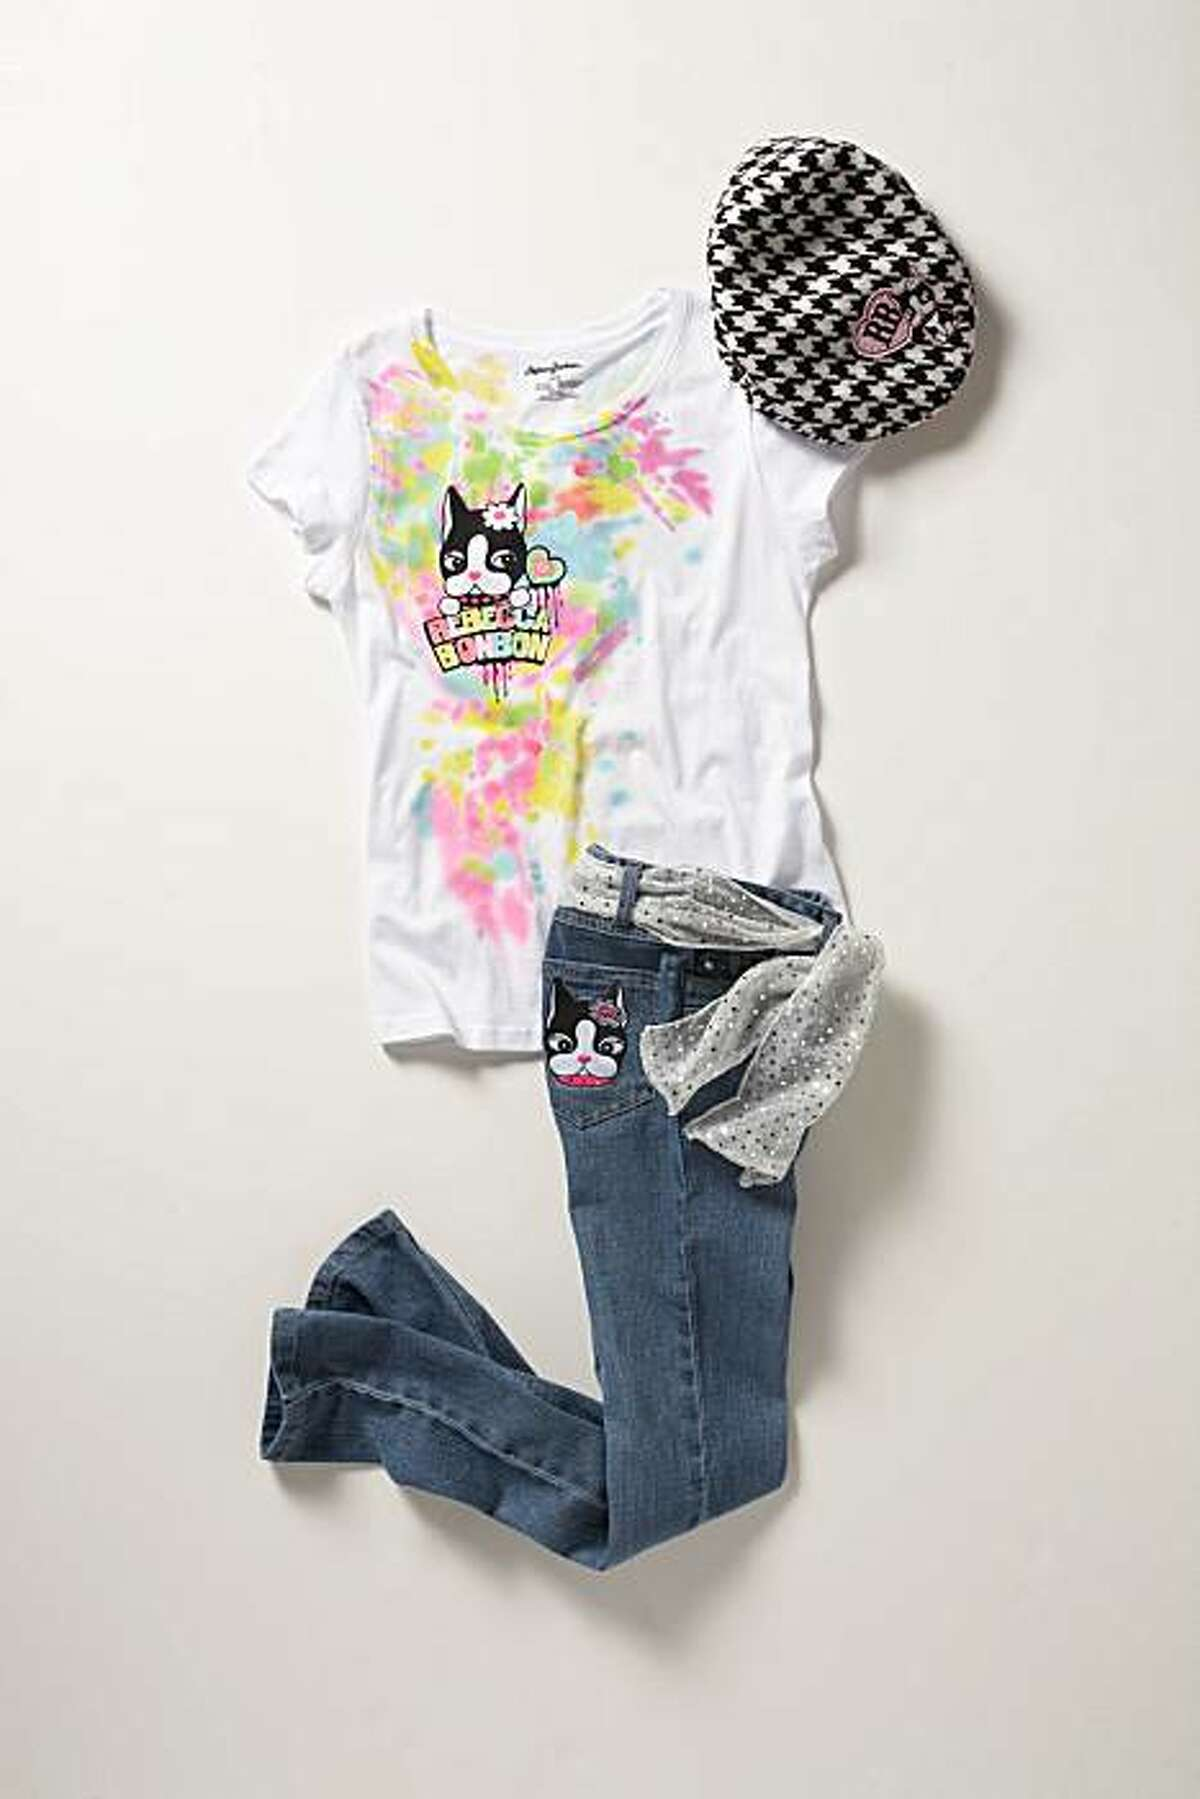 A girls' look from the Rebecca Bonbon collection: paint splatter tee ($9.99), skinny jean ($19.99) and houndstooth cabby hat ($6.99).